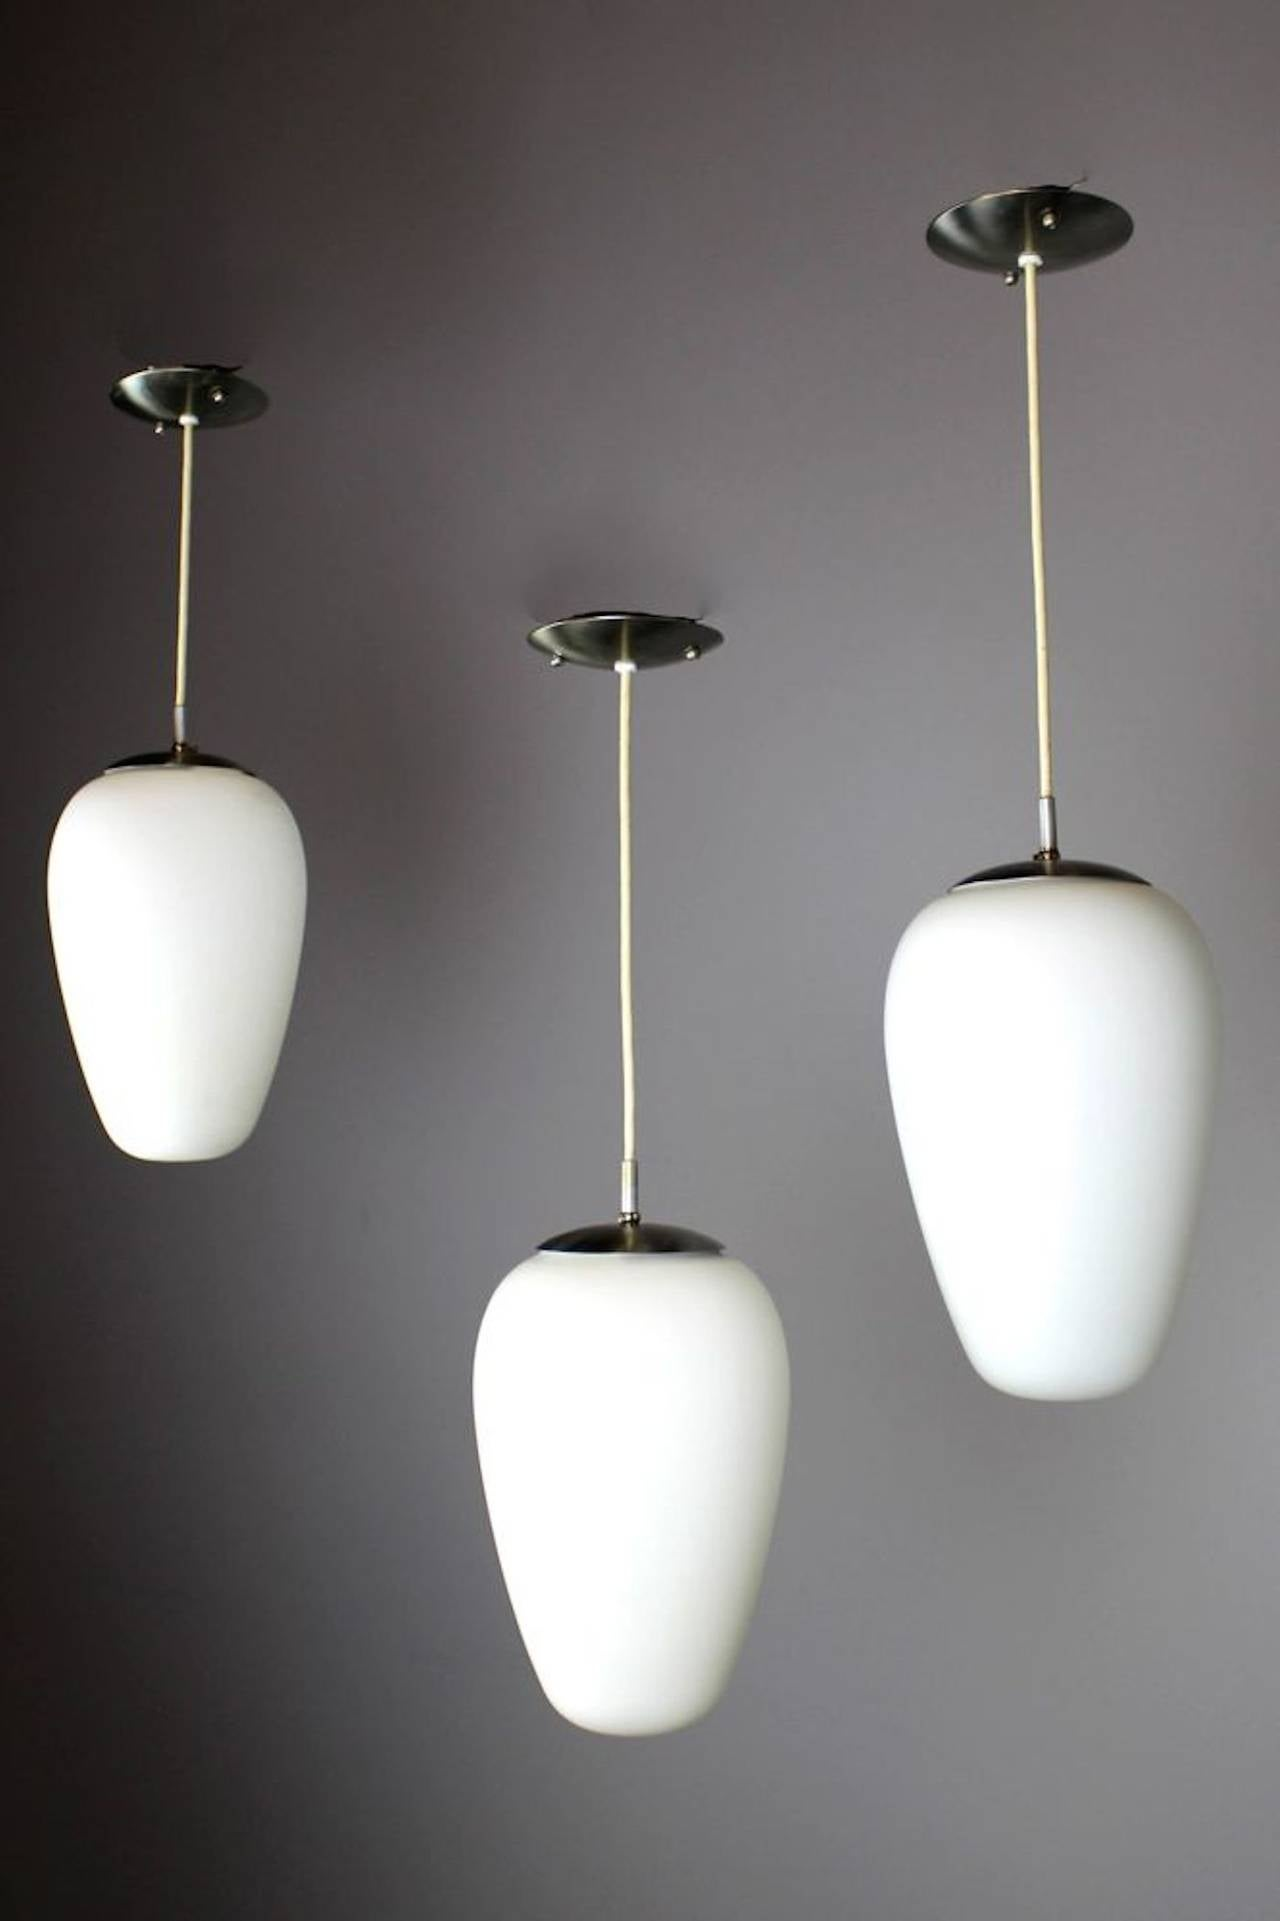 Mid century modern pendant light at 1stdibs for Mid century modern pendant light fixtures